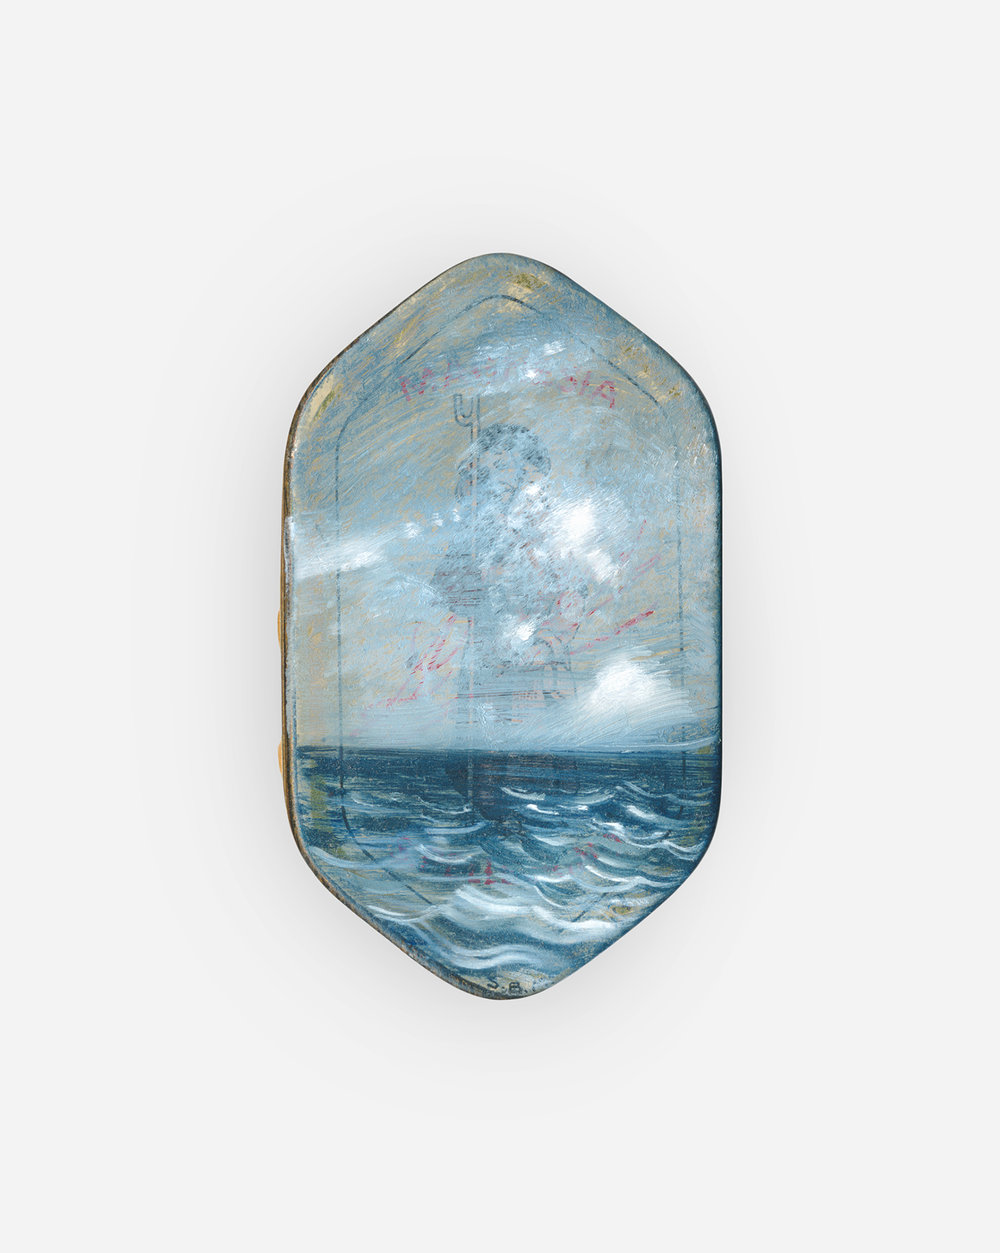 33%  2017 Oil on hydrating magnesium tin · 6 x 4 cm (framed) · Email for info